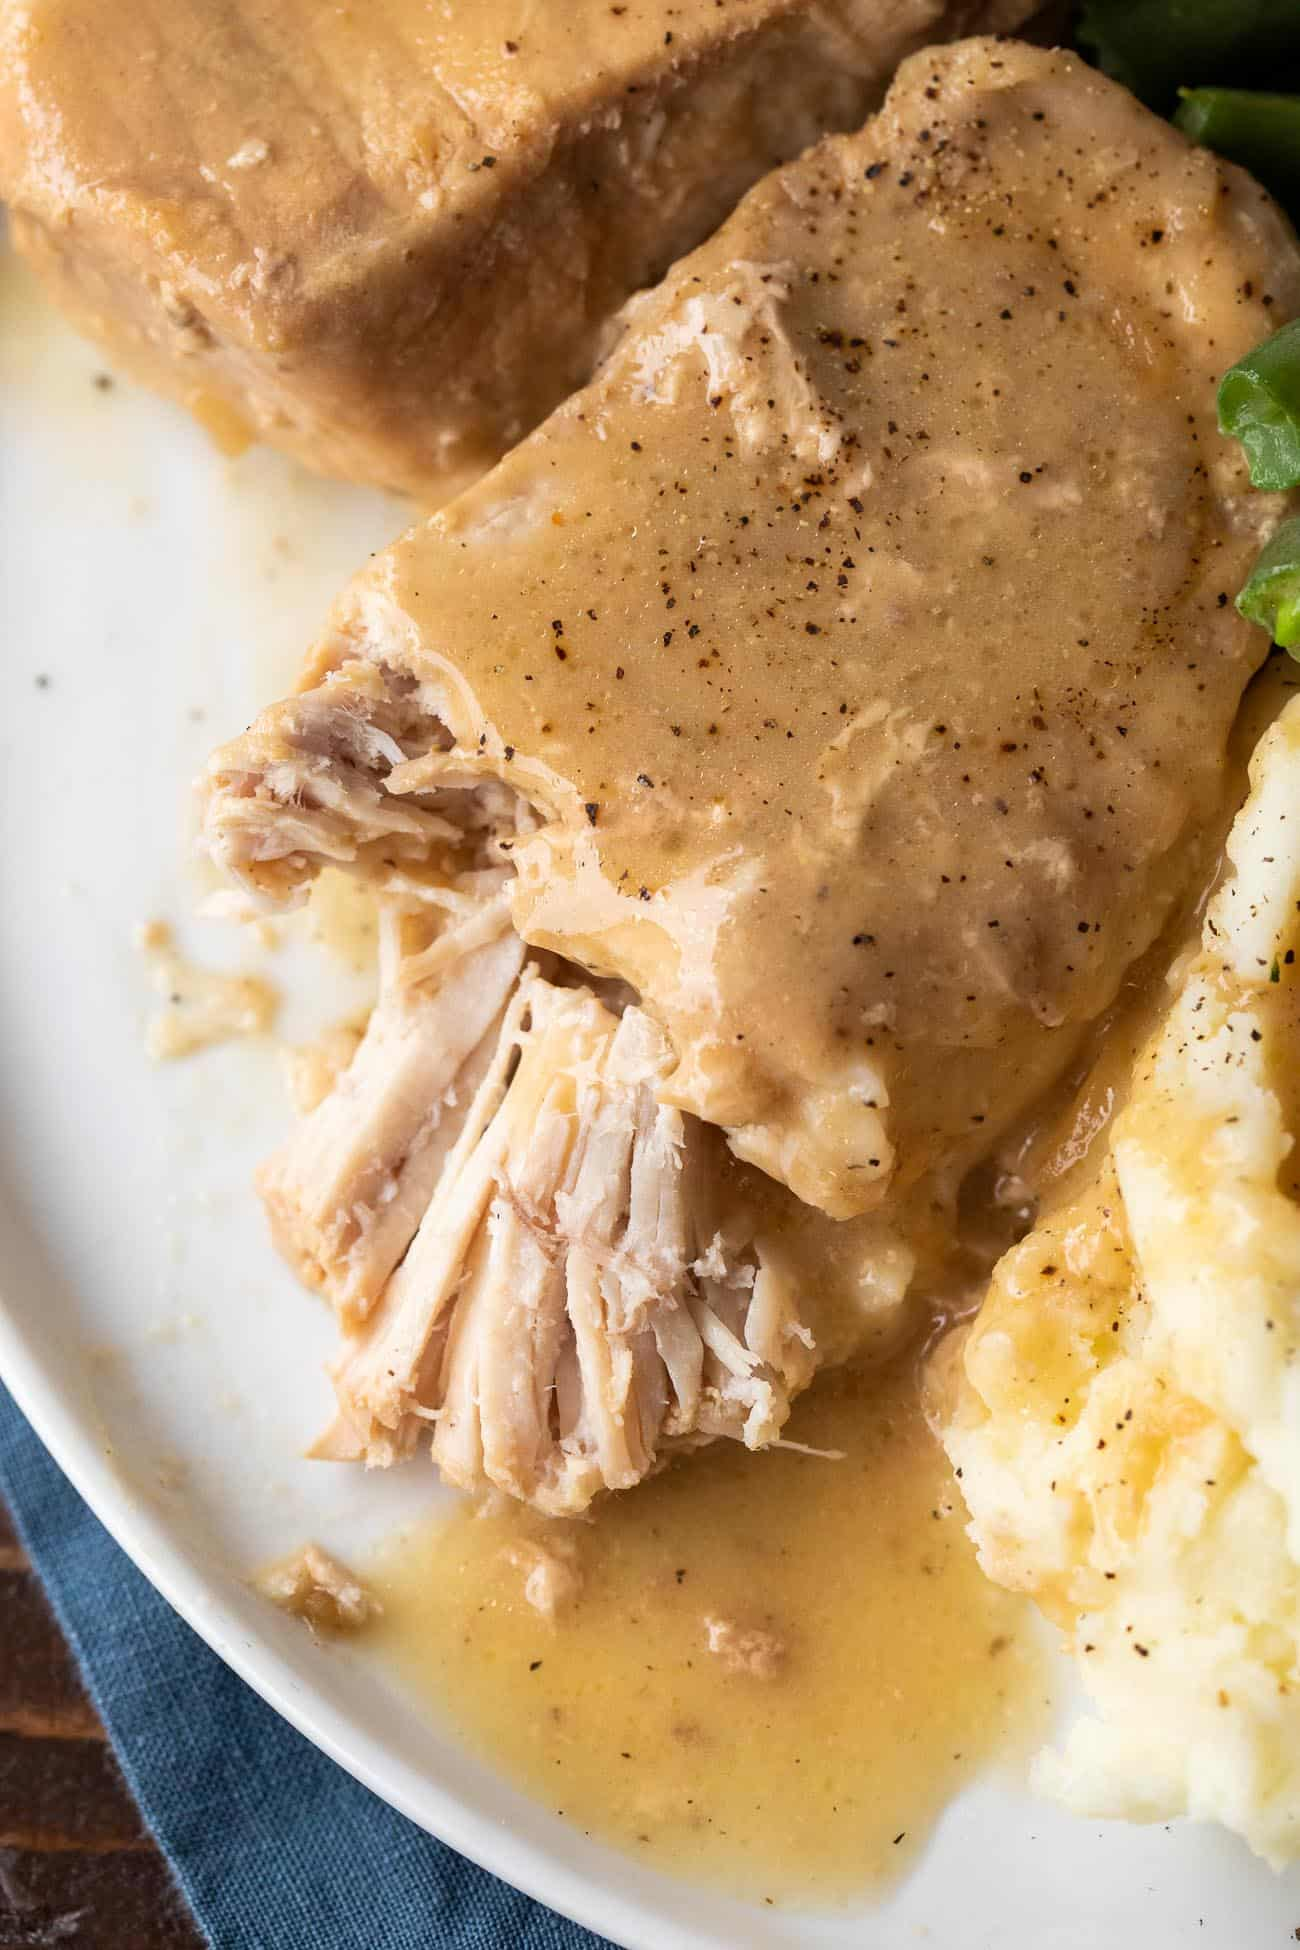 Crock Pot Pork Chops | Easy Slow Cooker Pork Chops | Boneless Pork Chops Crock Pot Recipe #CrockPot #SlowCooker #PorkChops #Gravy